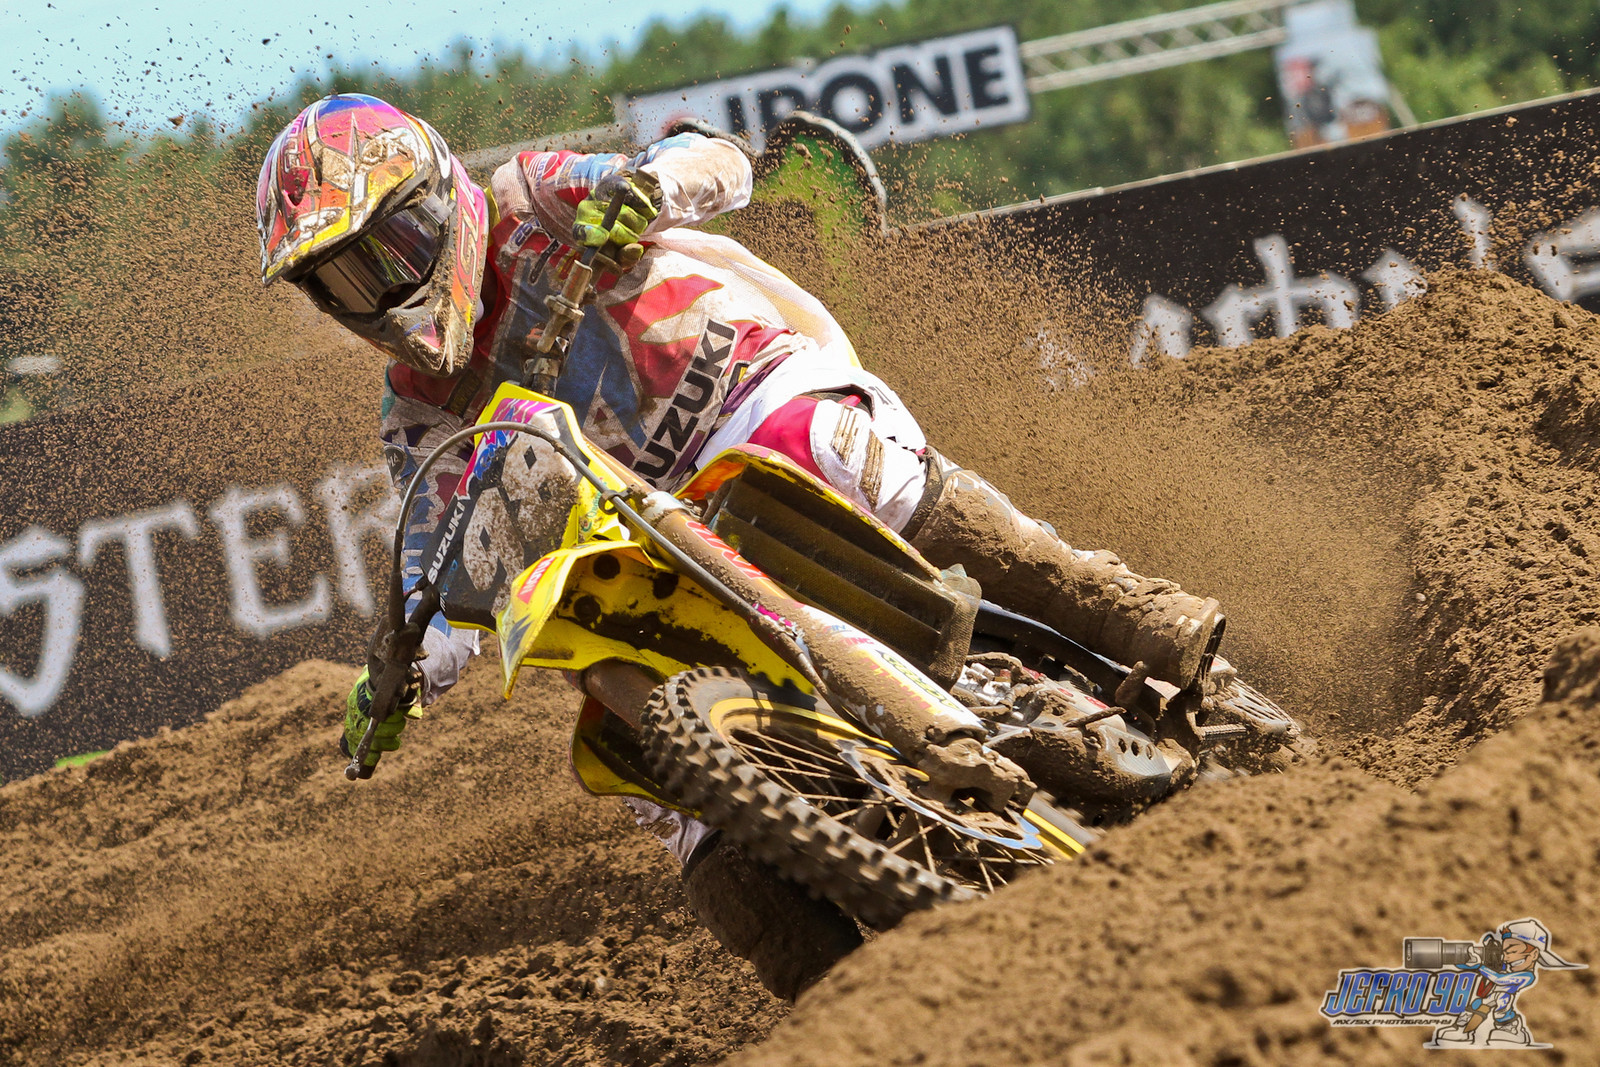 Bas Vaessen - Photo Gallery: MXGP of Limburg - Motocross Pictures - Vital MX